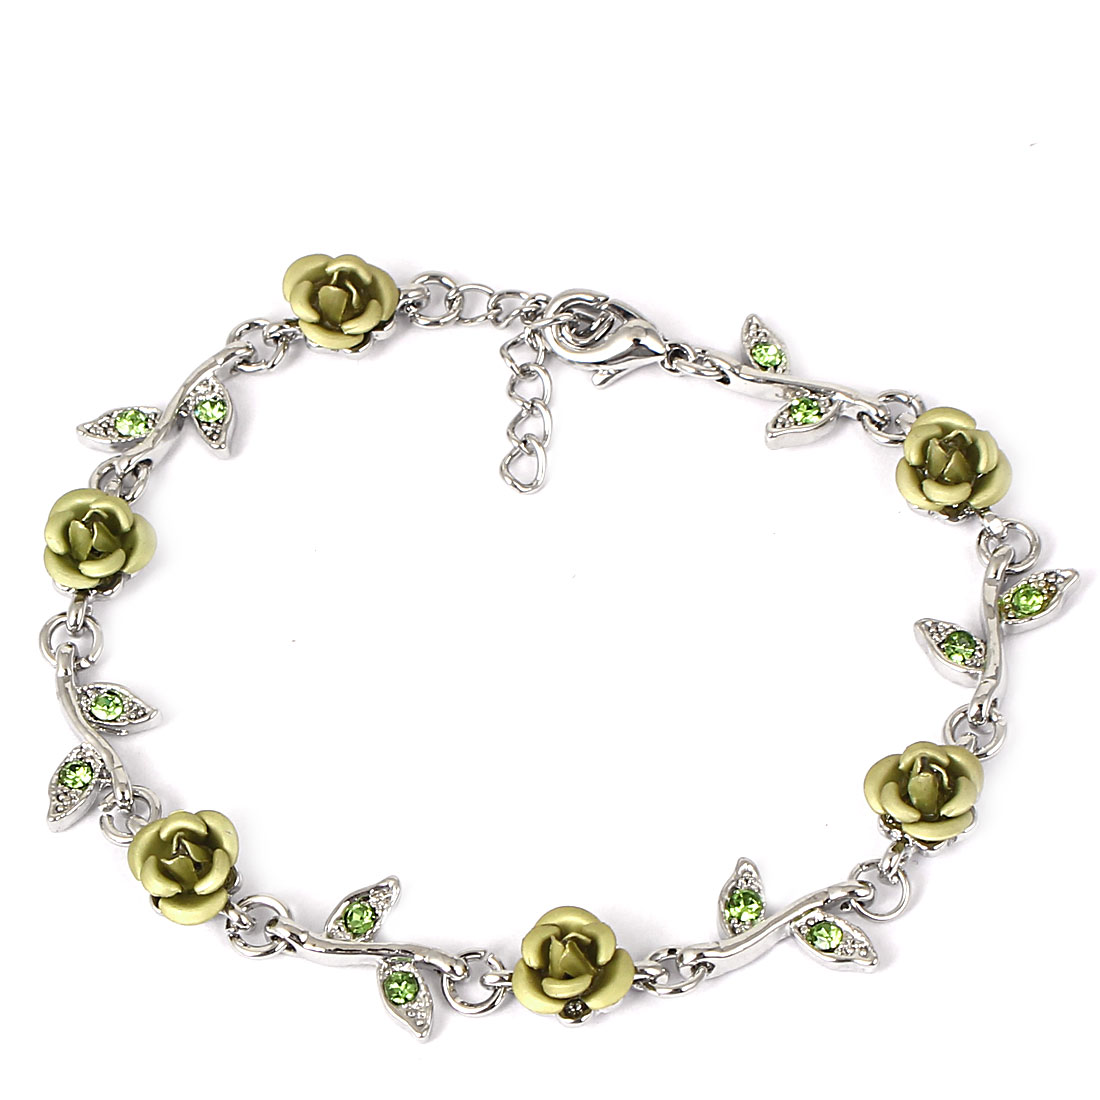 Lady Fashion Jewelry Rose Flower Crystal Decor Bracelet Silver Tone Light Green